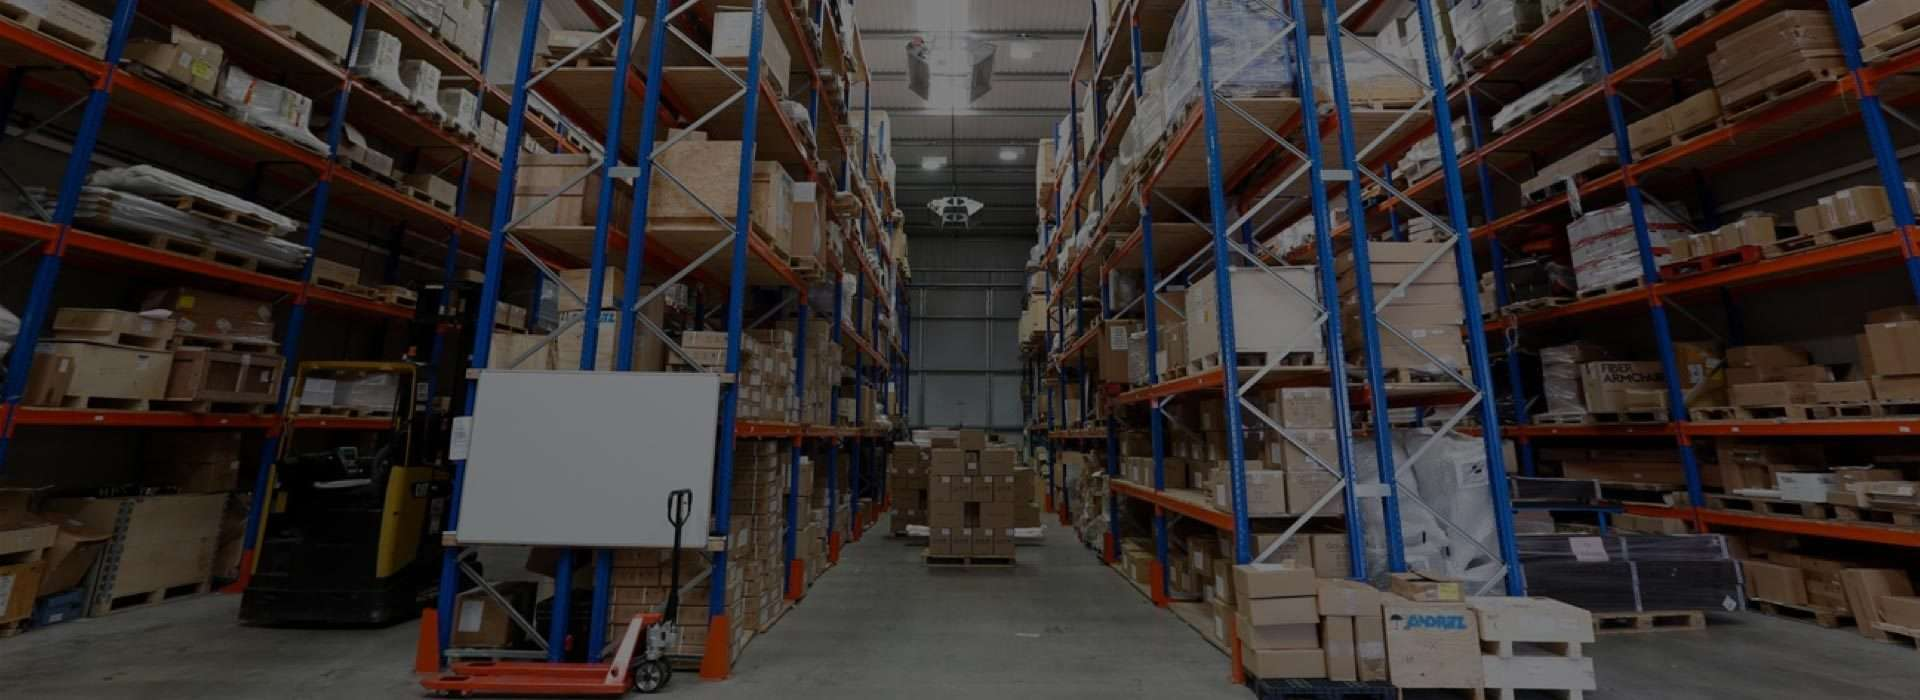 Storage and Warehousing in Basildon